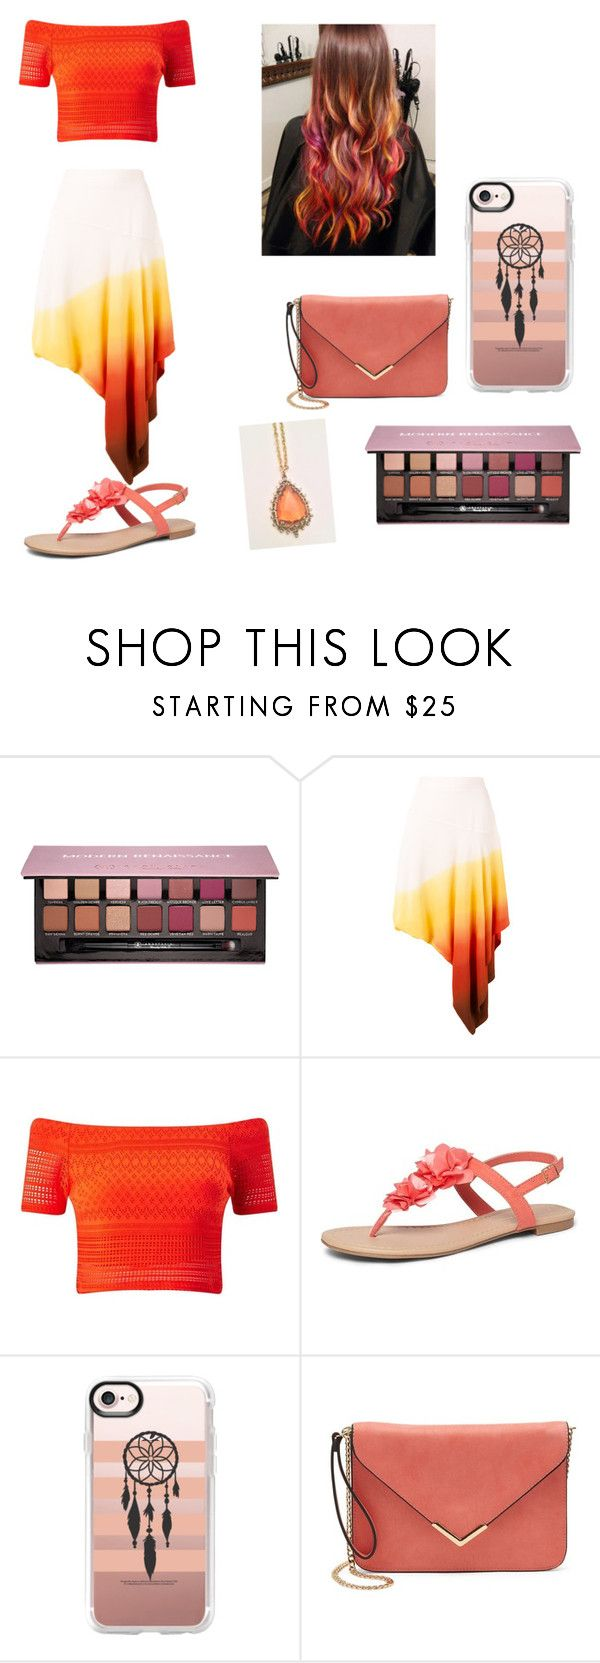 """""""Amber Skies"""" by dawnisaur ❤ liked on Polyvore featuring Anastasia Beverly Hills, J.W. Anderson, Miss Selfridge, Dorothy Perkins and Casetify"""